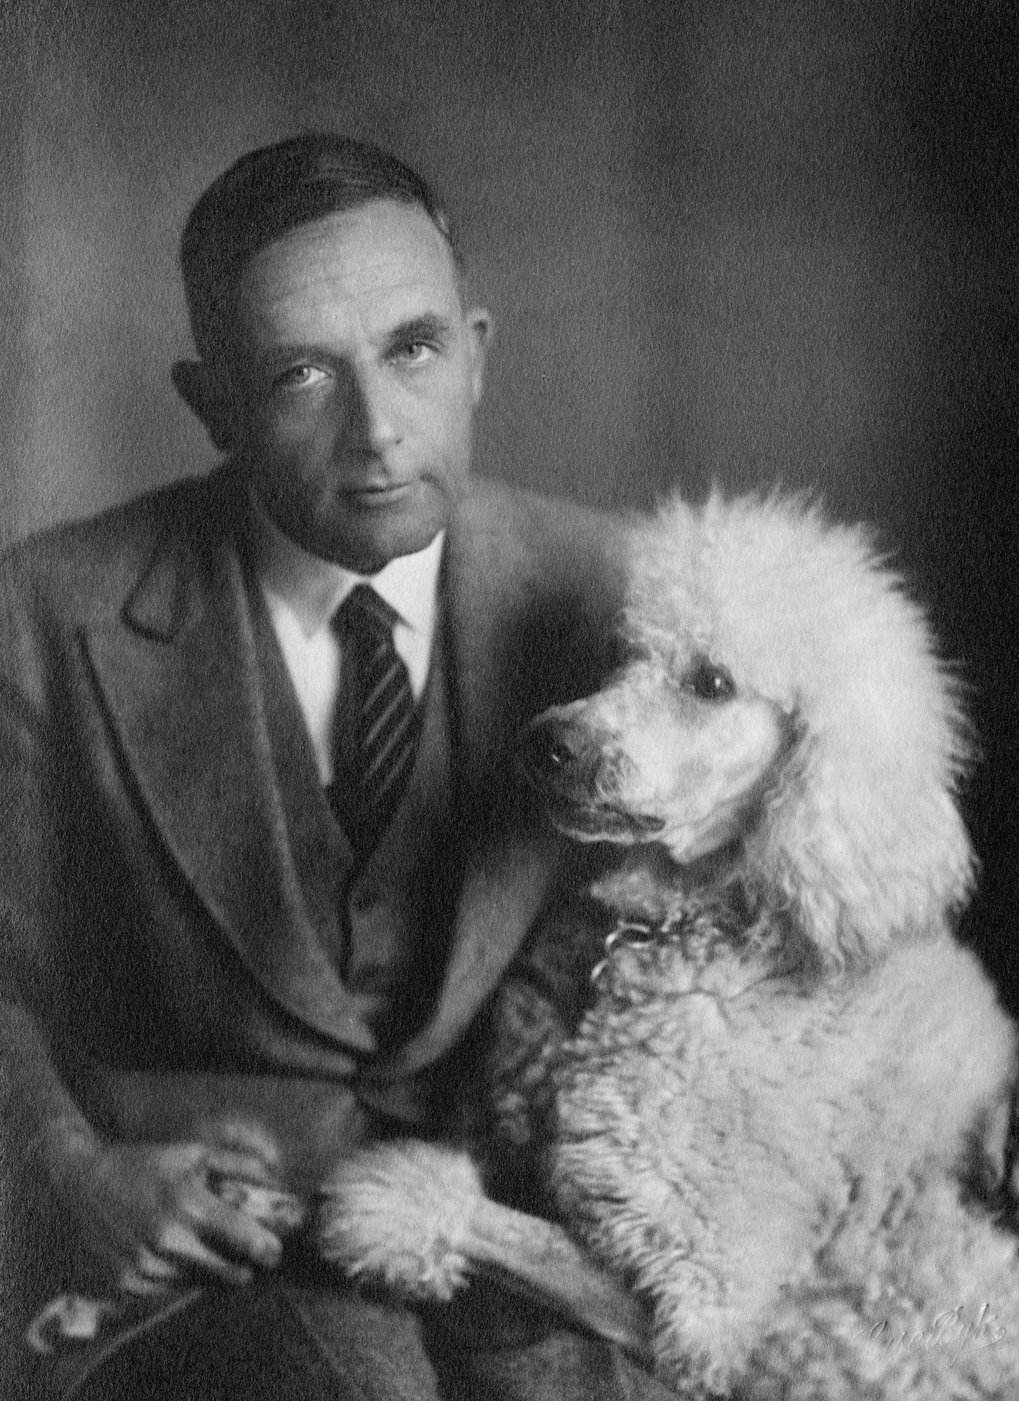 Otto Heinrich Warburg with dog.